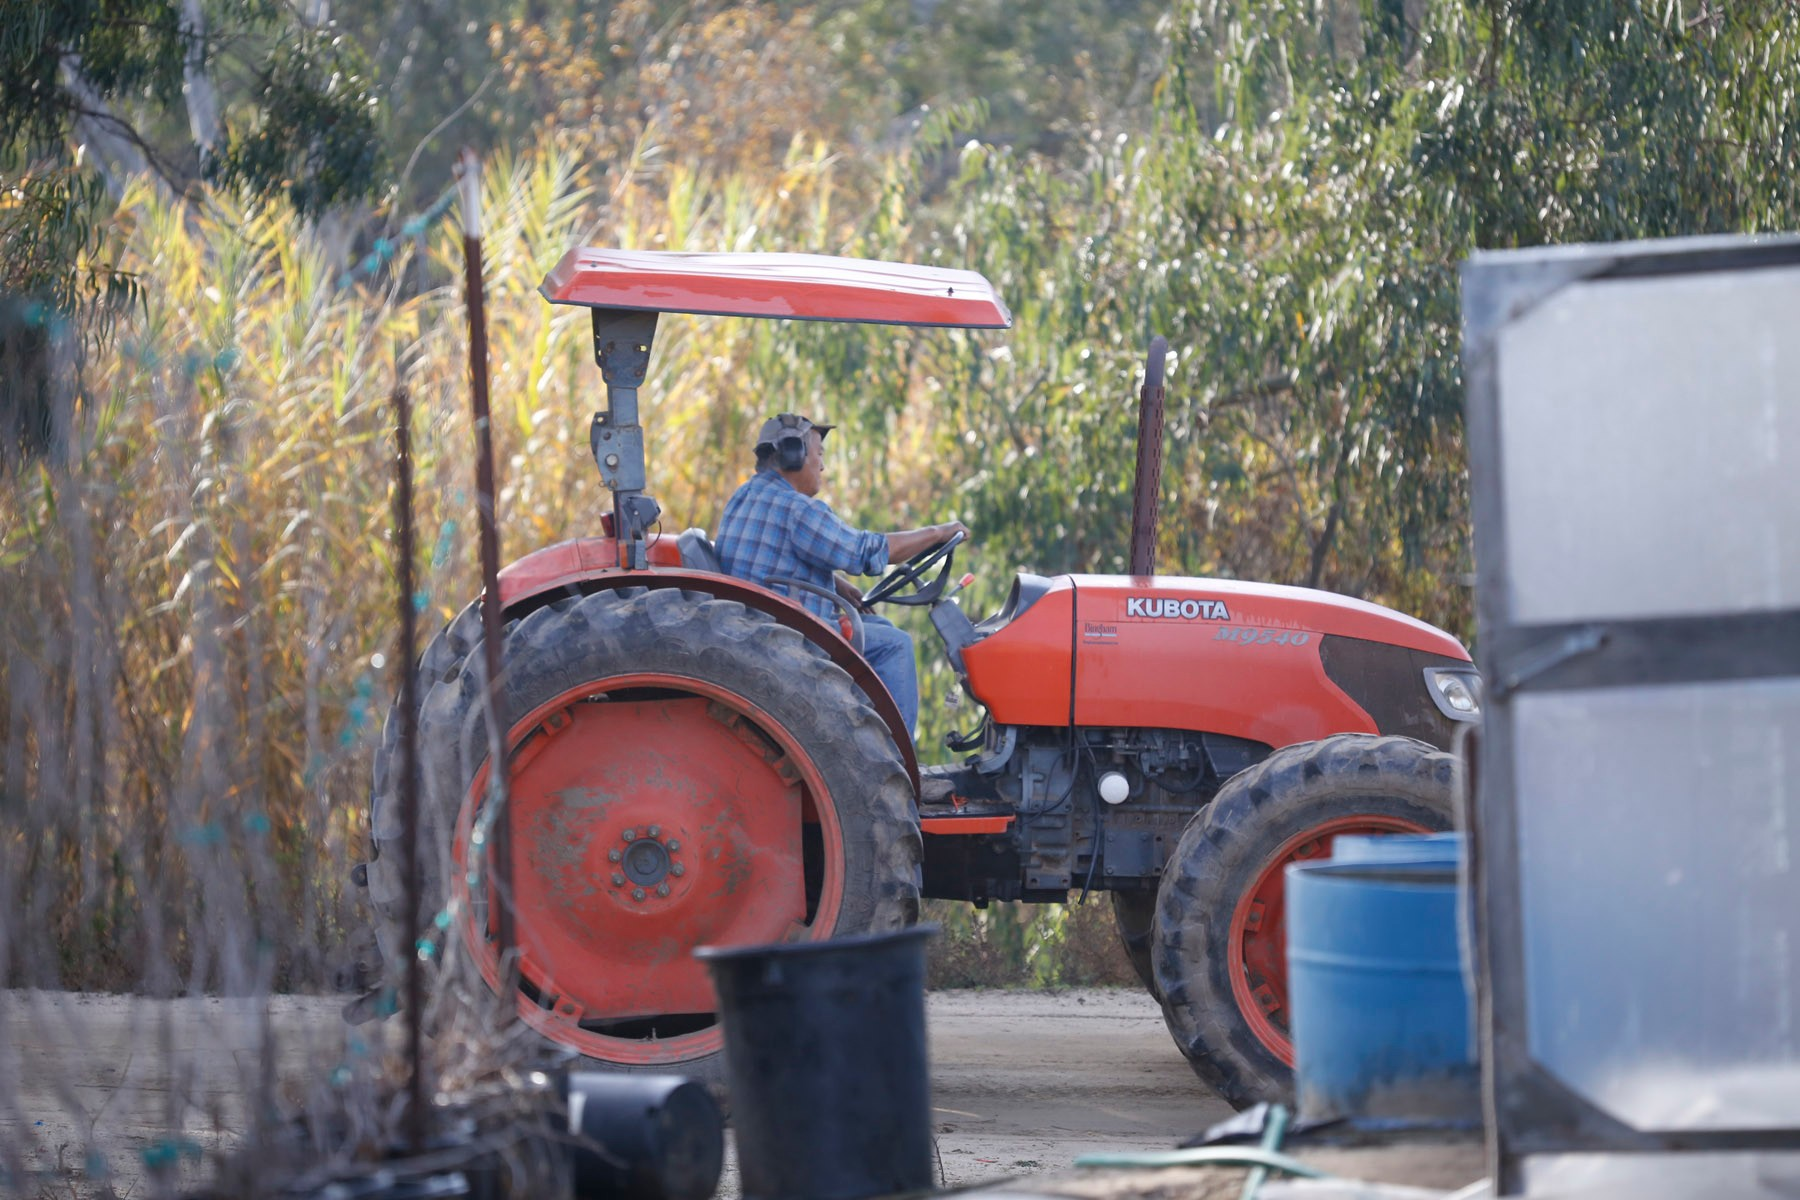 San Diego California, USA, December 13th 2016: | Chino Farms located in Rancho Santa. The farm is recognize and publicize for the high quality produce. Tom Chino driving the tractor towards the fields. | (Alejandro Tamayo)